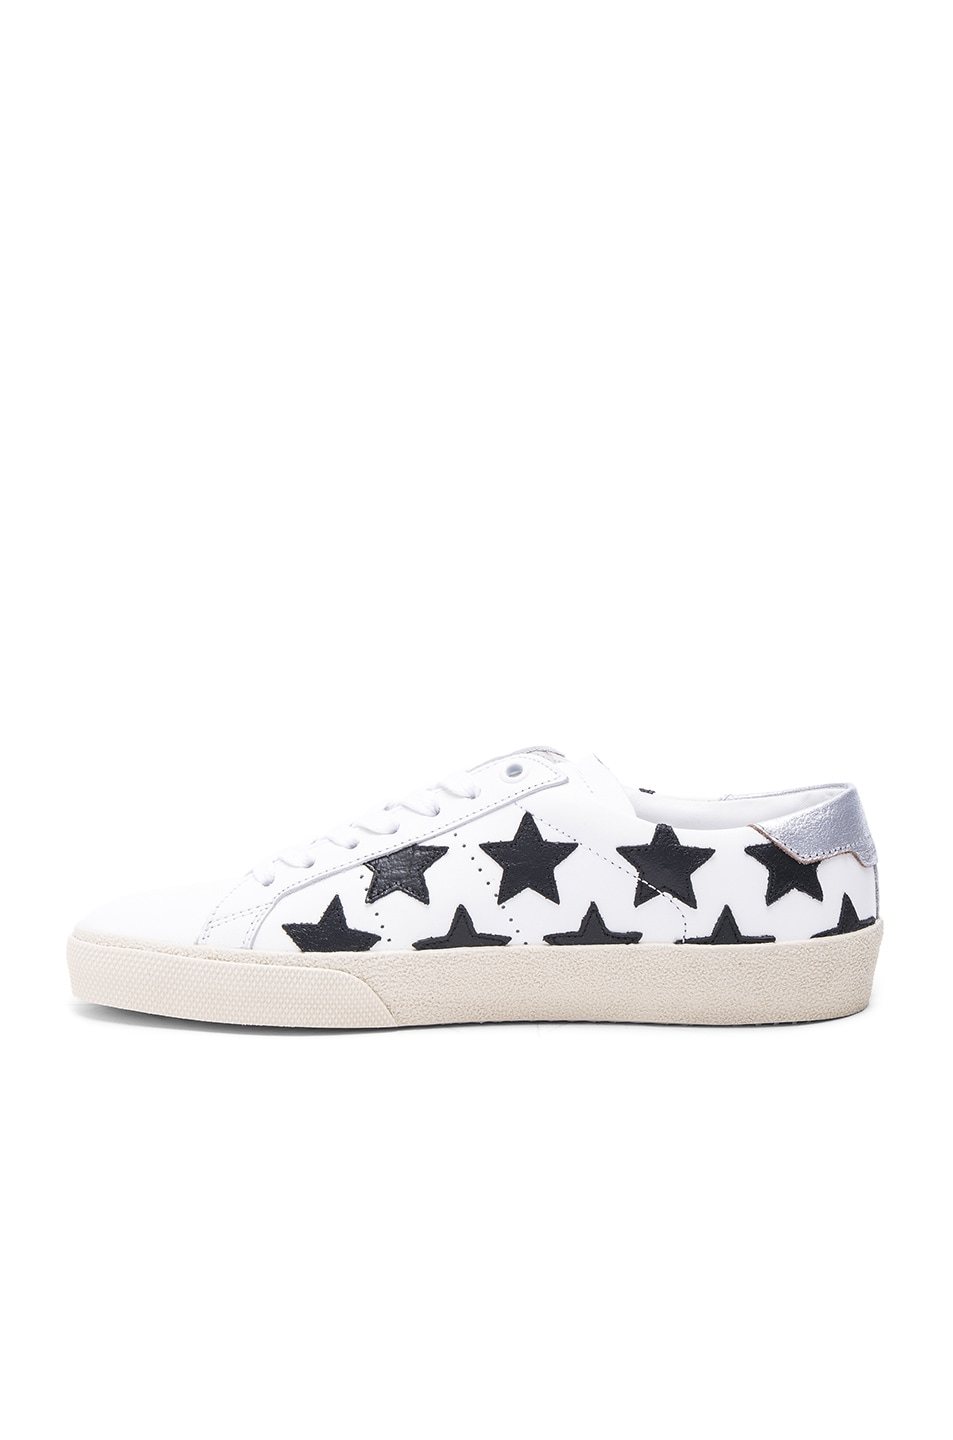 Image 5 of Saint Laurent Court Classic Star Leather Sneakers in Black & White